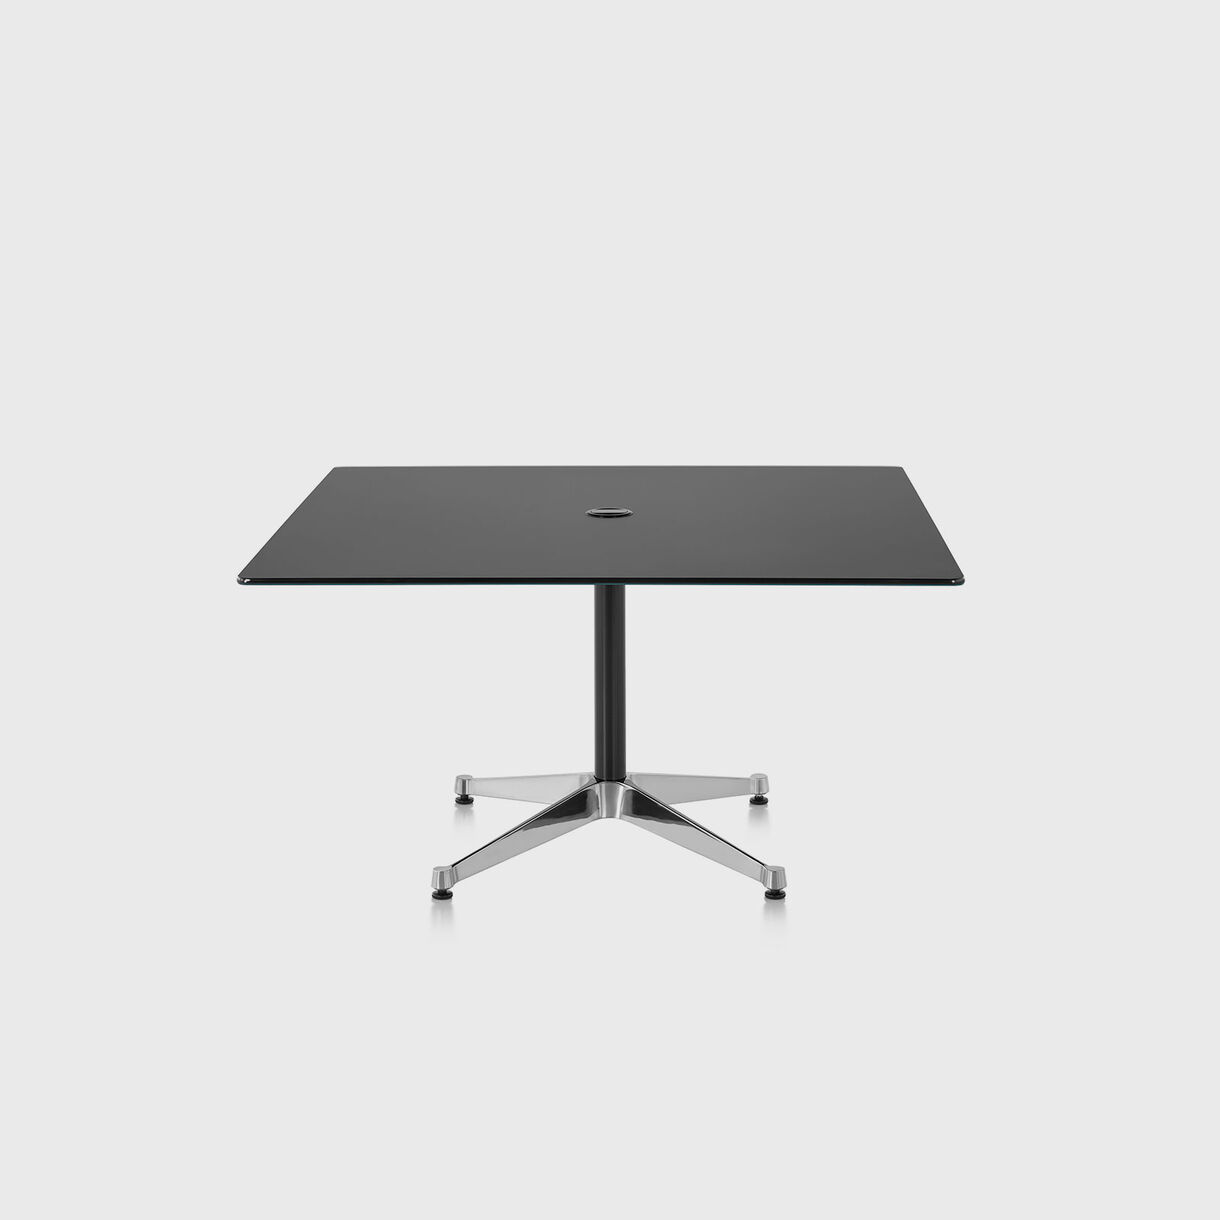 Eames Table, Contract Base